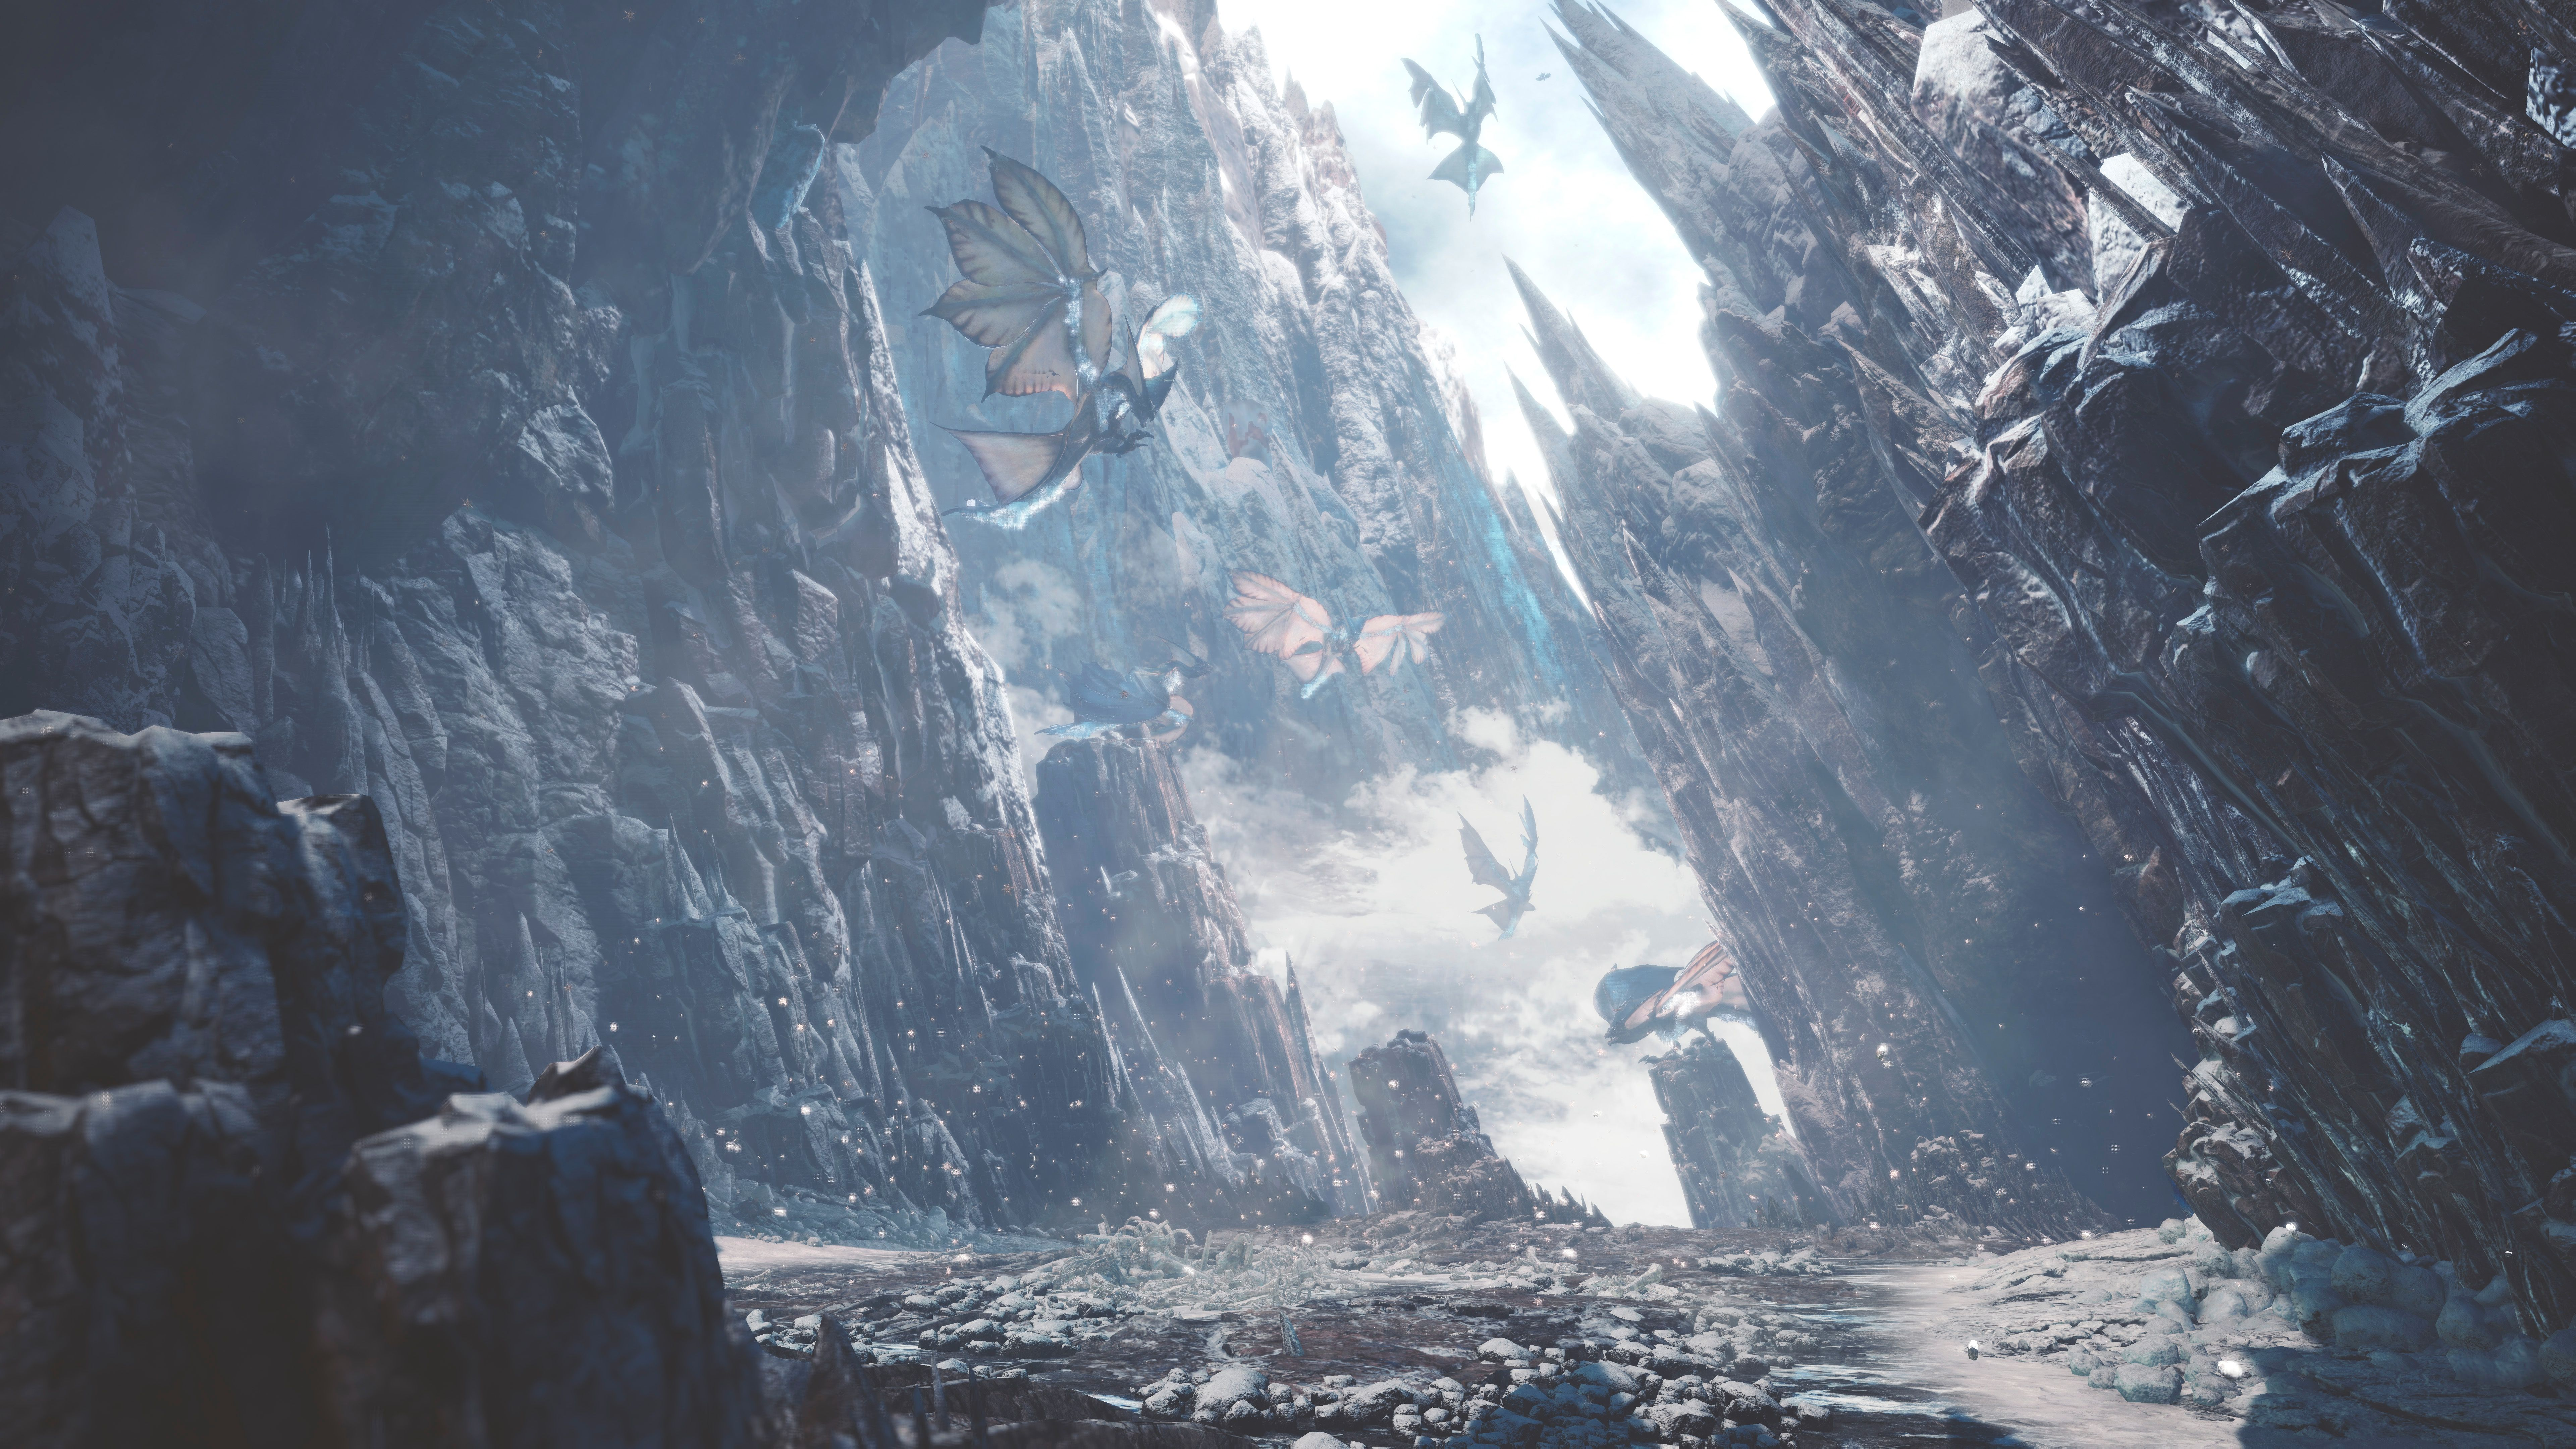 /mhw-yian-garuga-guide-how-to-find-and-defeat-the-monster-9c19232i feature image